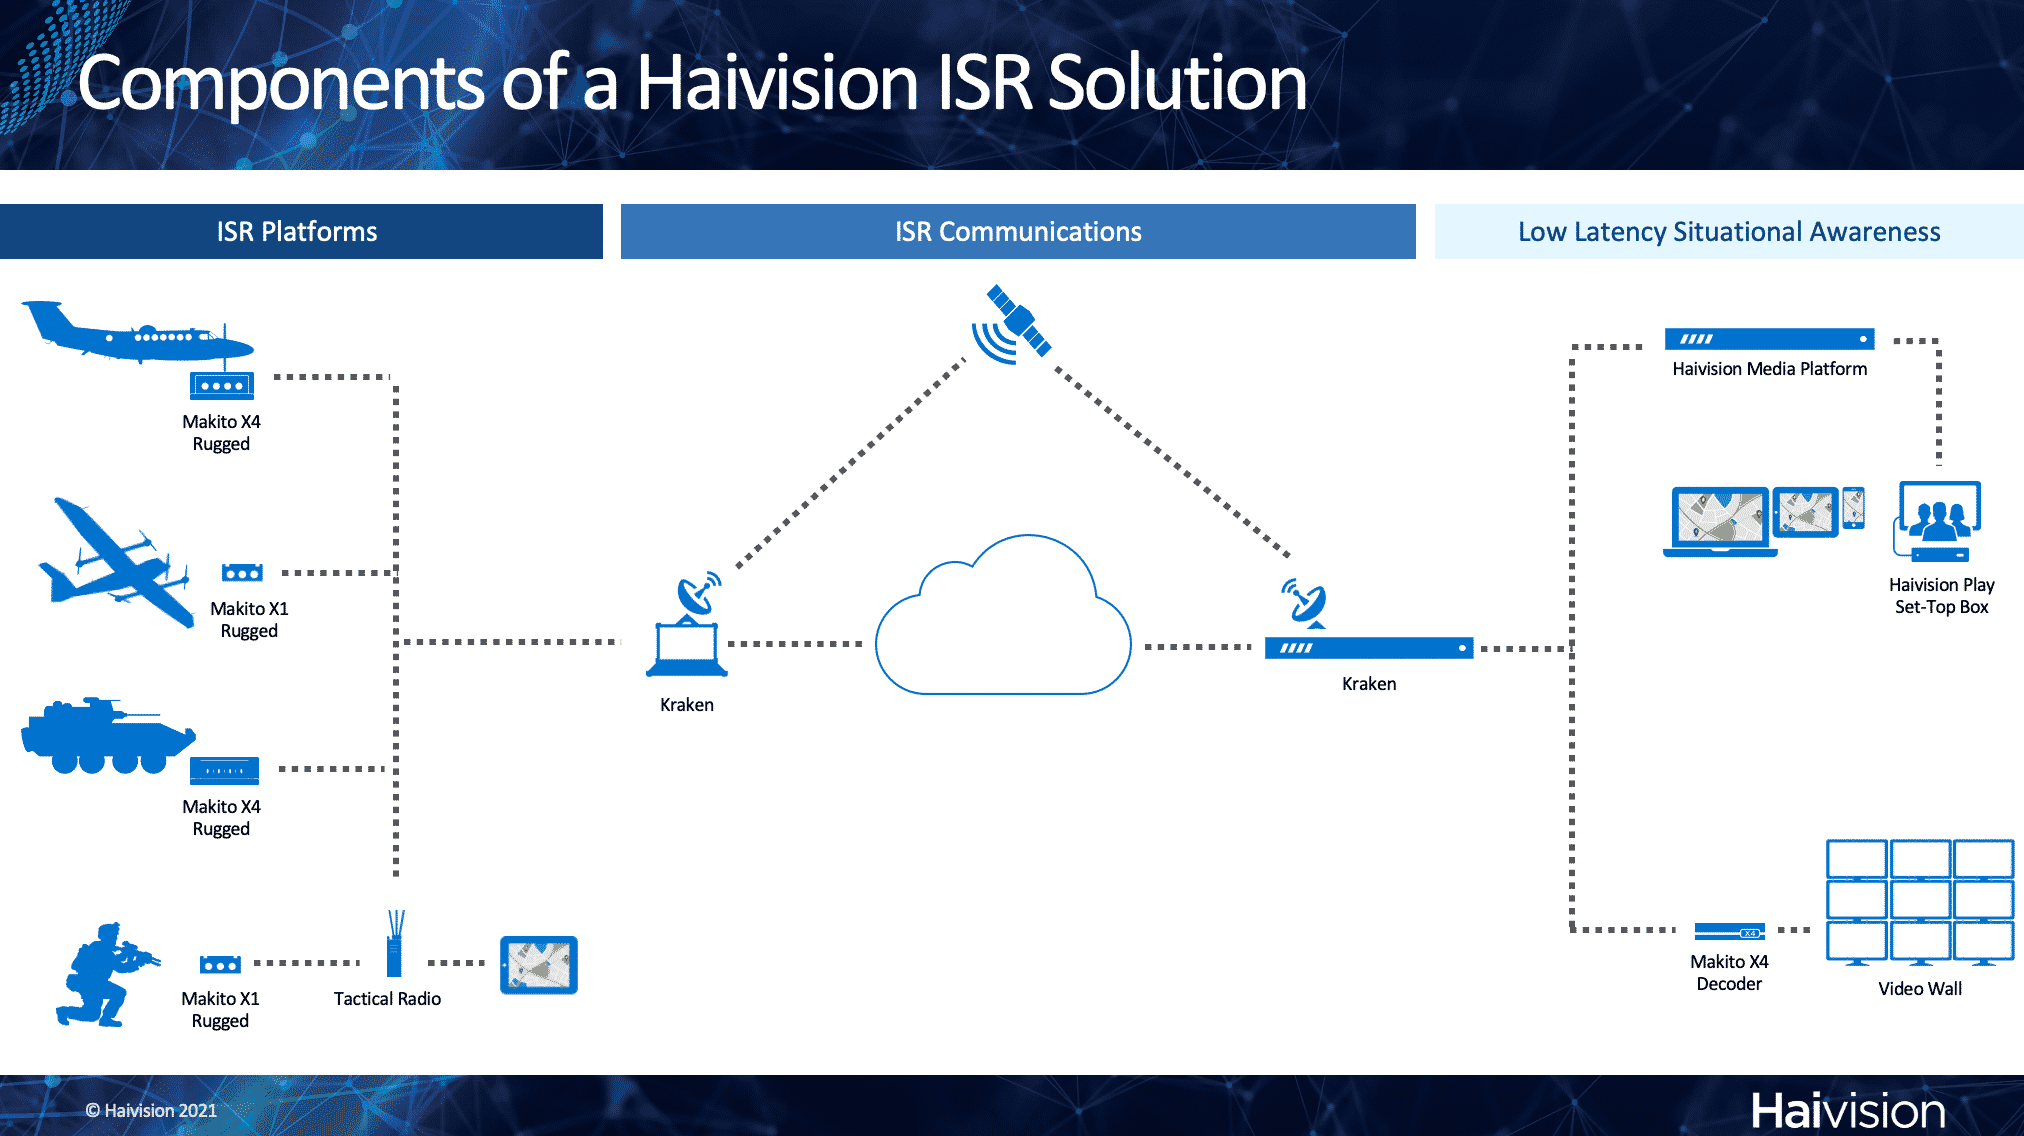 Components of a Haivision ISR Solution